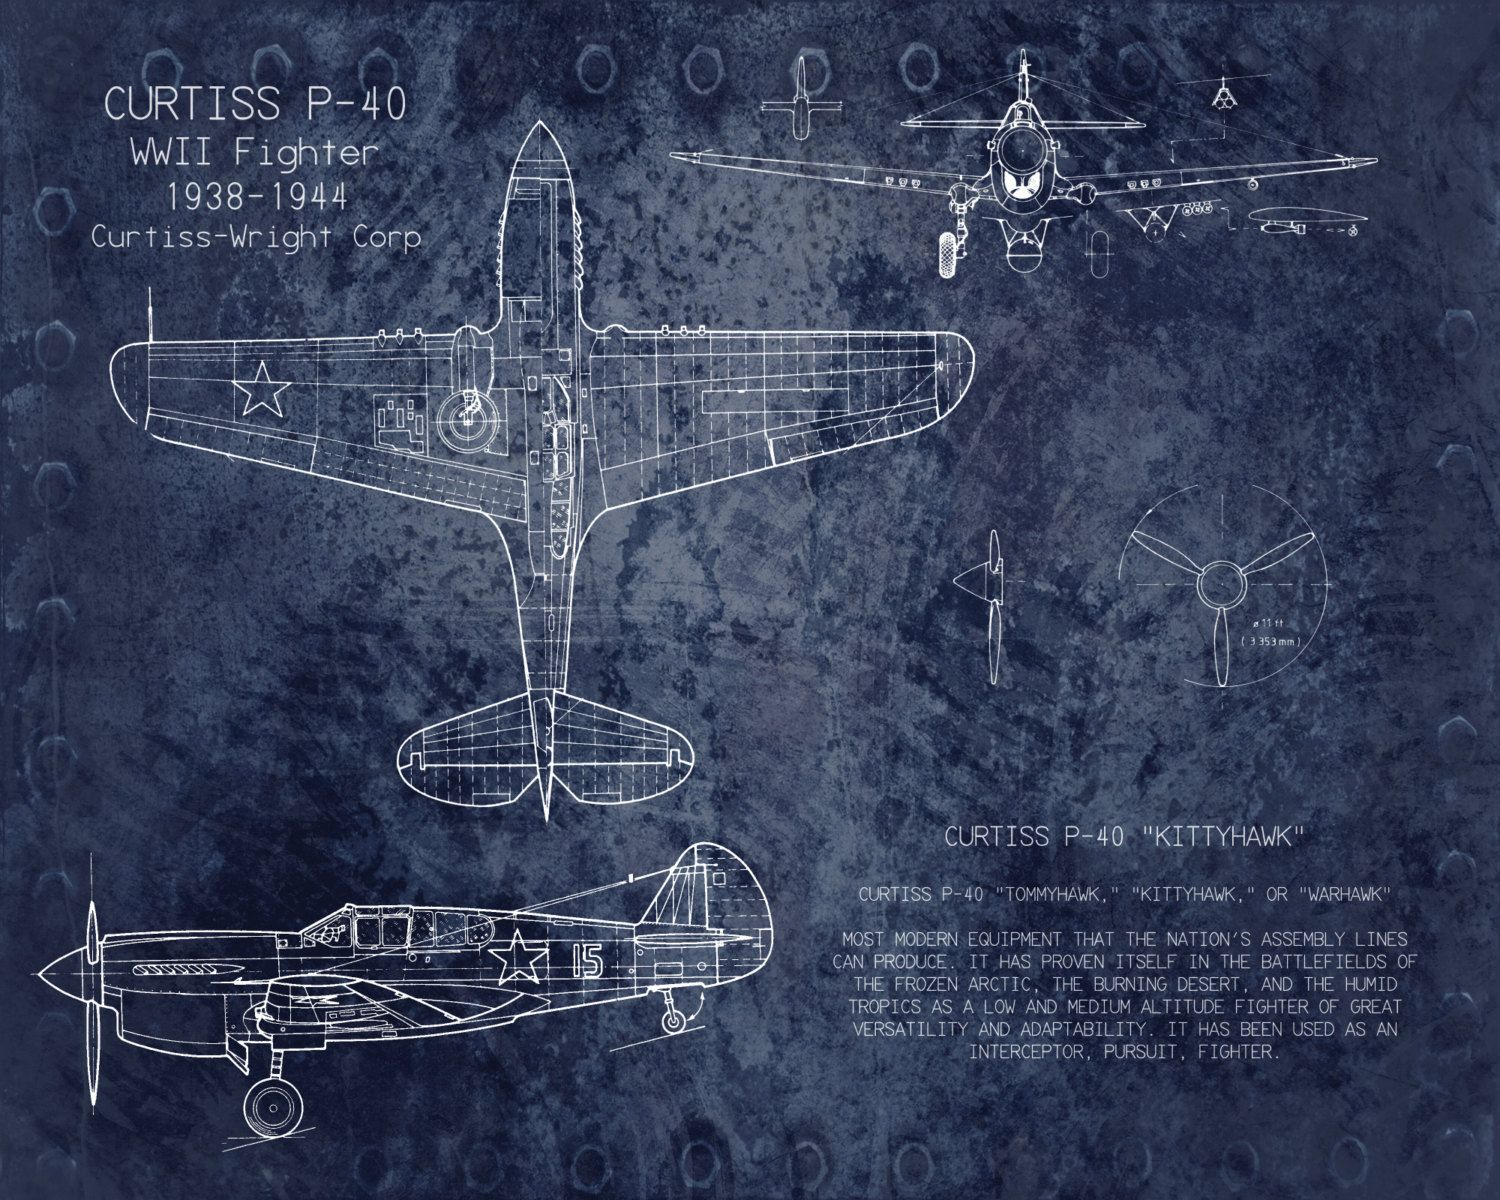 Curtiss p40 wwii airplane blueprint art 8 x 10 by scarletblvd curtiss p40 wwii airplane blueprint art 8 x 10 by scarletblvd 2500 malvernweather Gallery